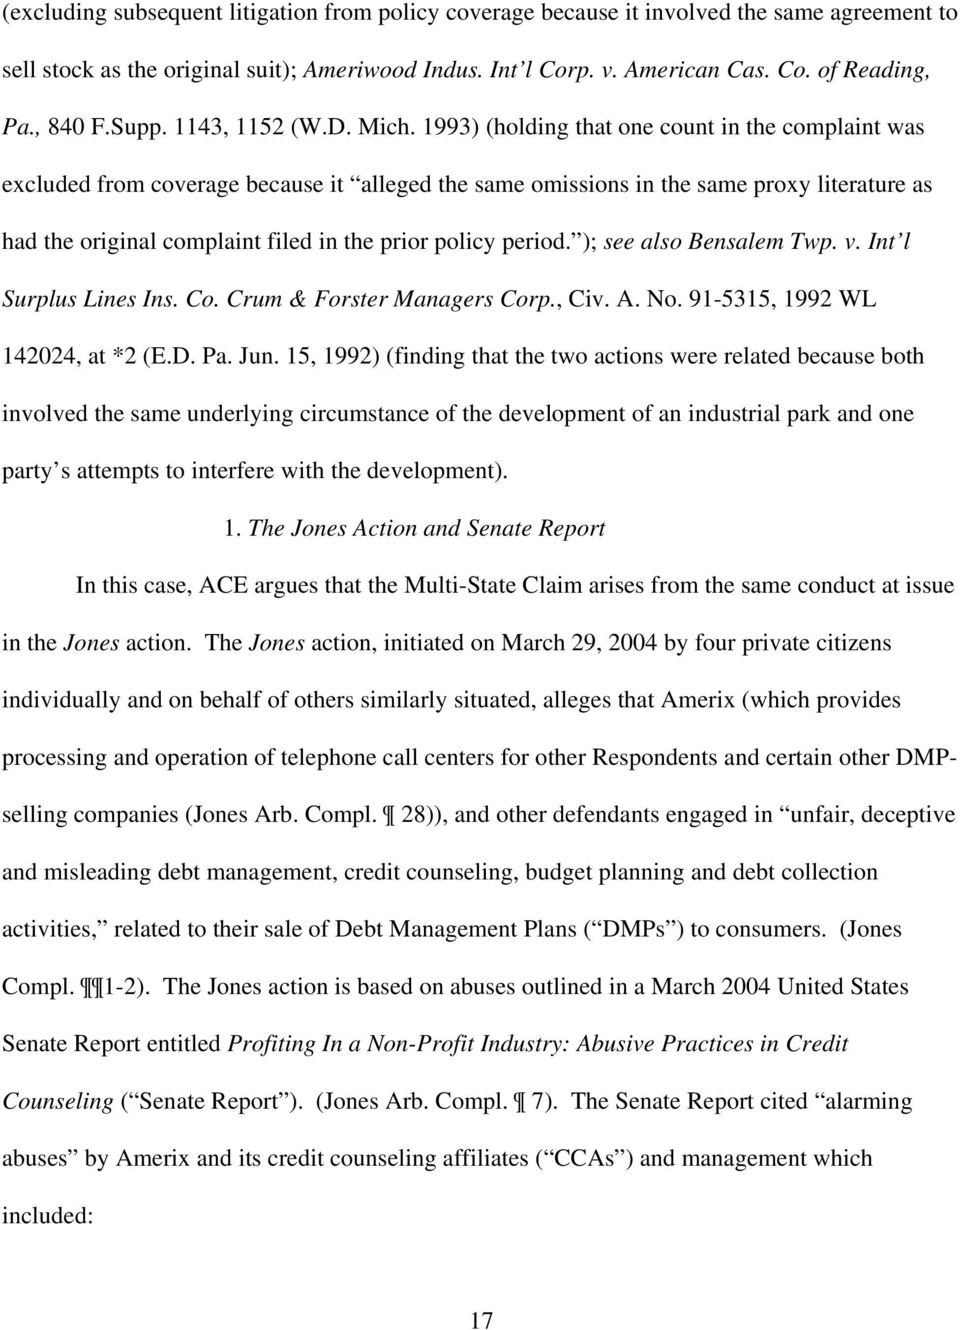 1993) (holding that one count in the complaint was excluded from coverage because it alleged the same omissions in the same proxy literature as had the original complaint filed in the prior policy